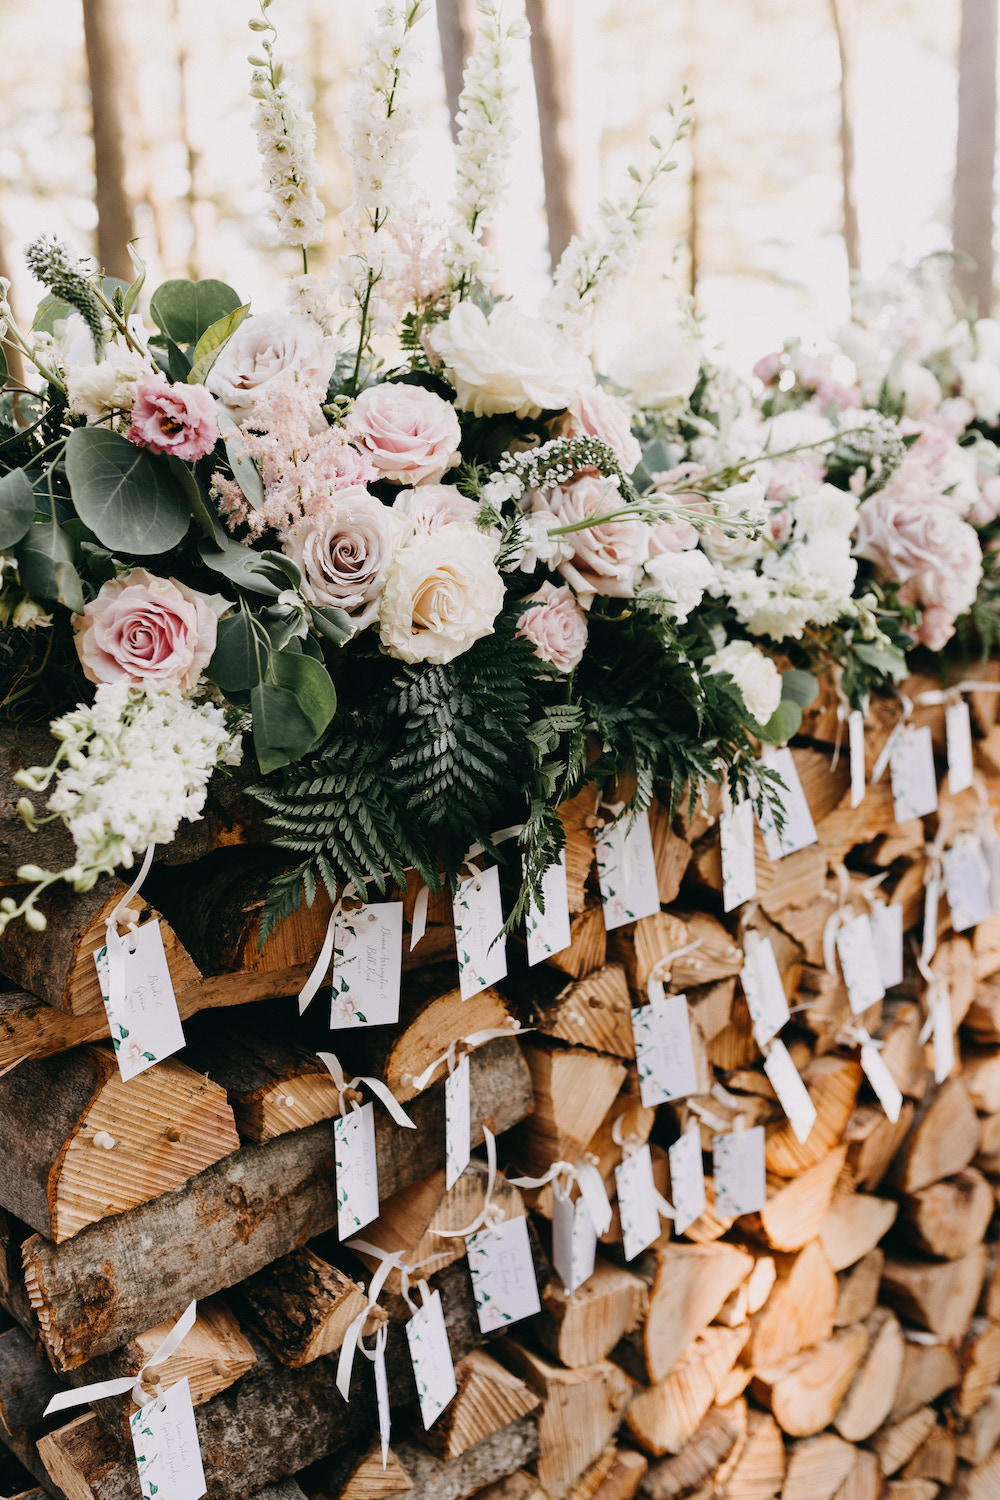 Blush and white florals and escort cards hanging on a wood pile.